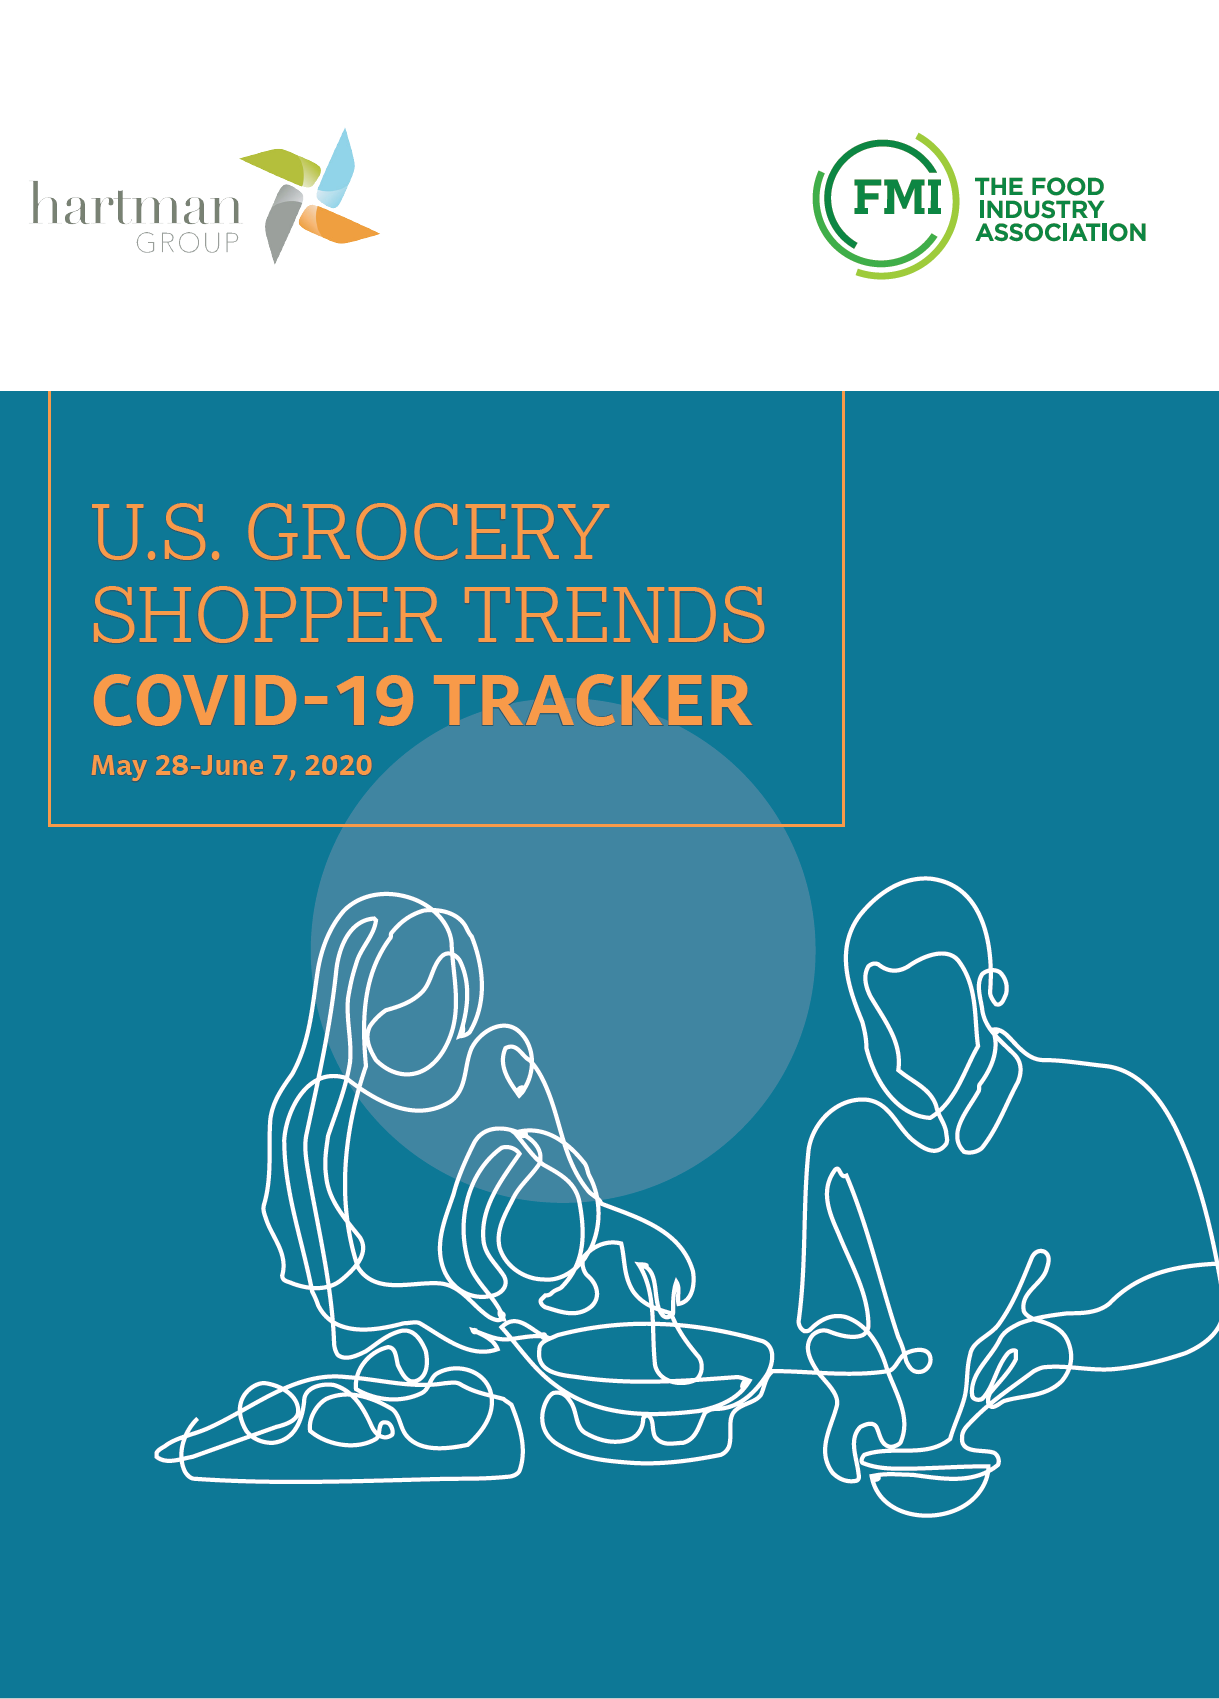 U.S. Grocery Shopper Trends COVID-19 Tracker May 28 June 7 2020